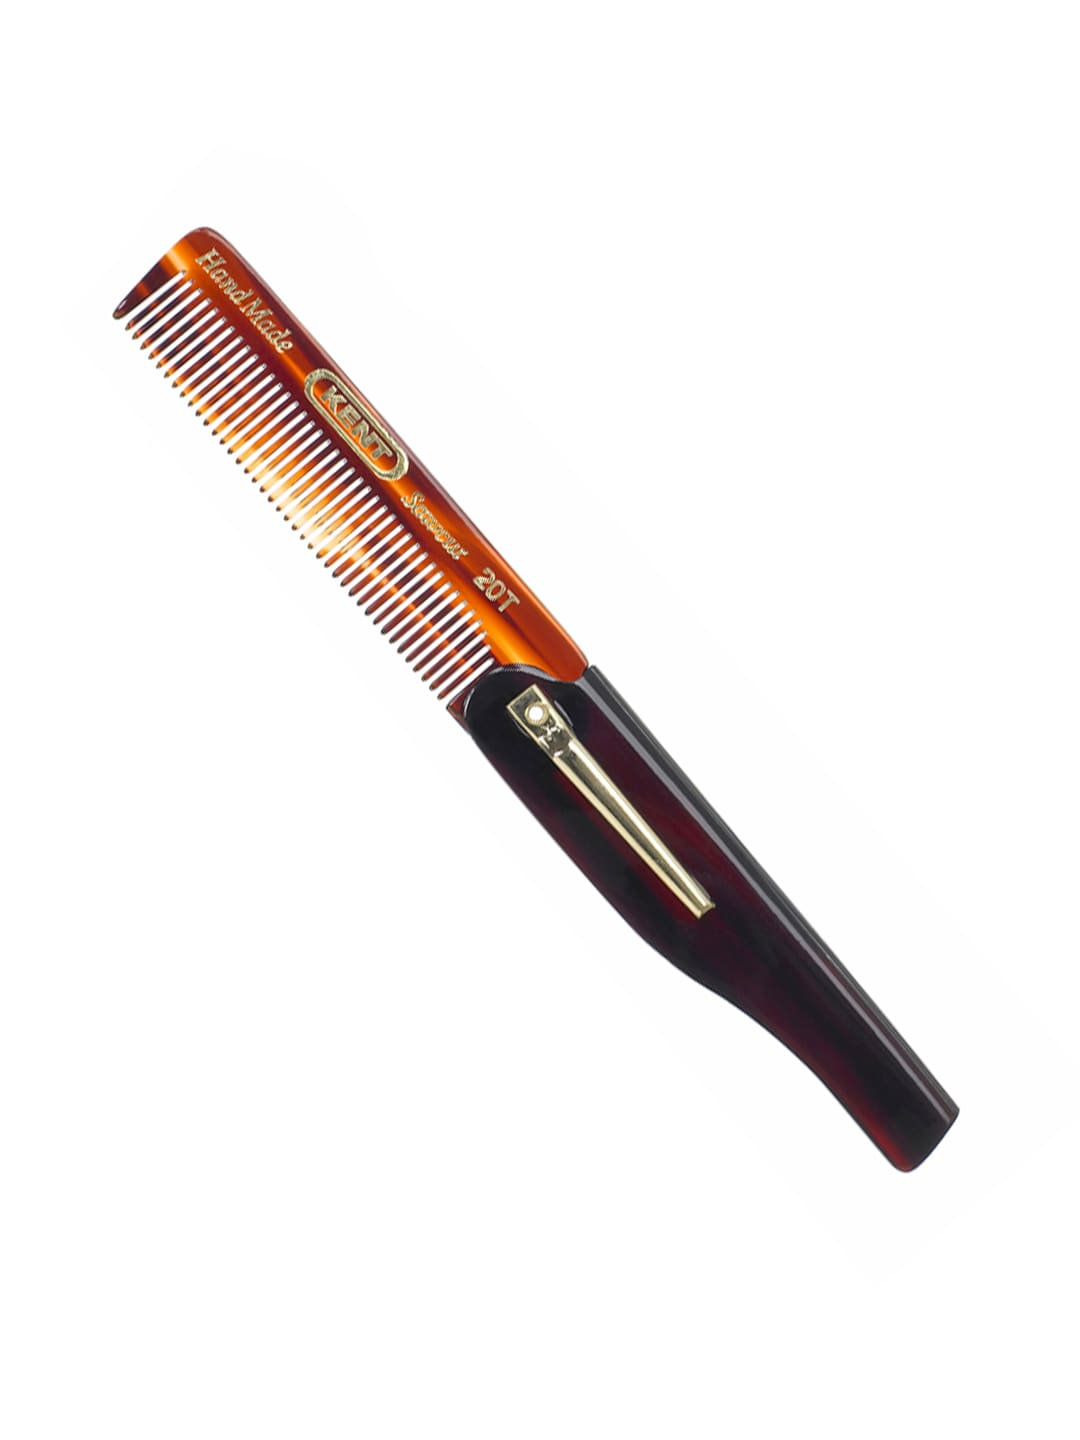 Kent Unisex Brown Handcrafted Comb 20T image